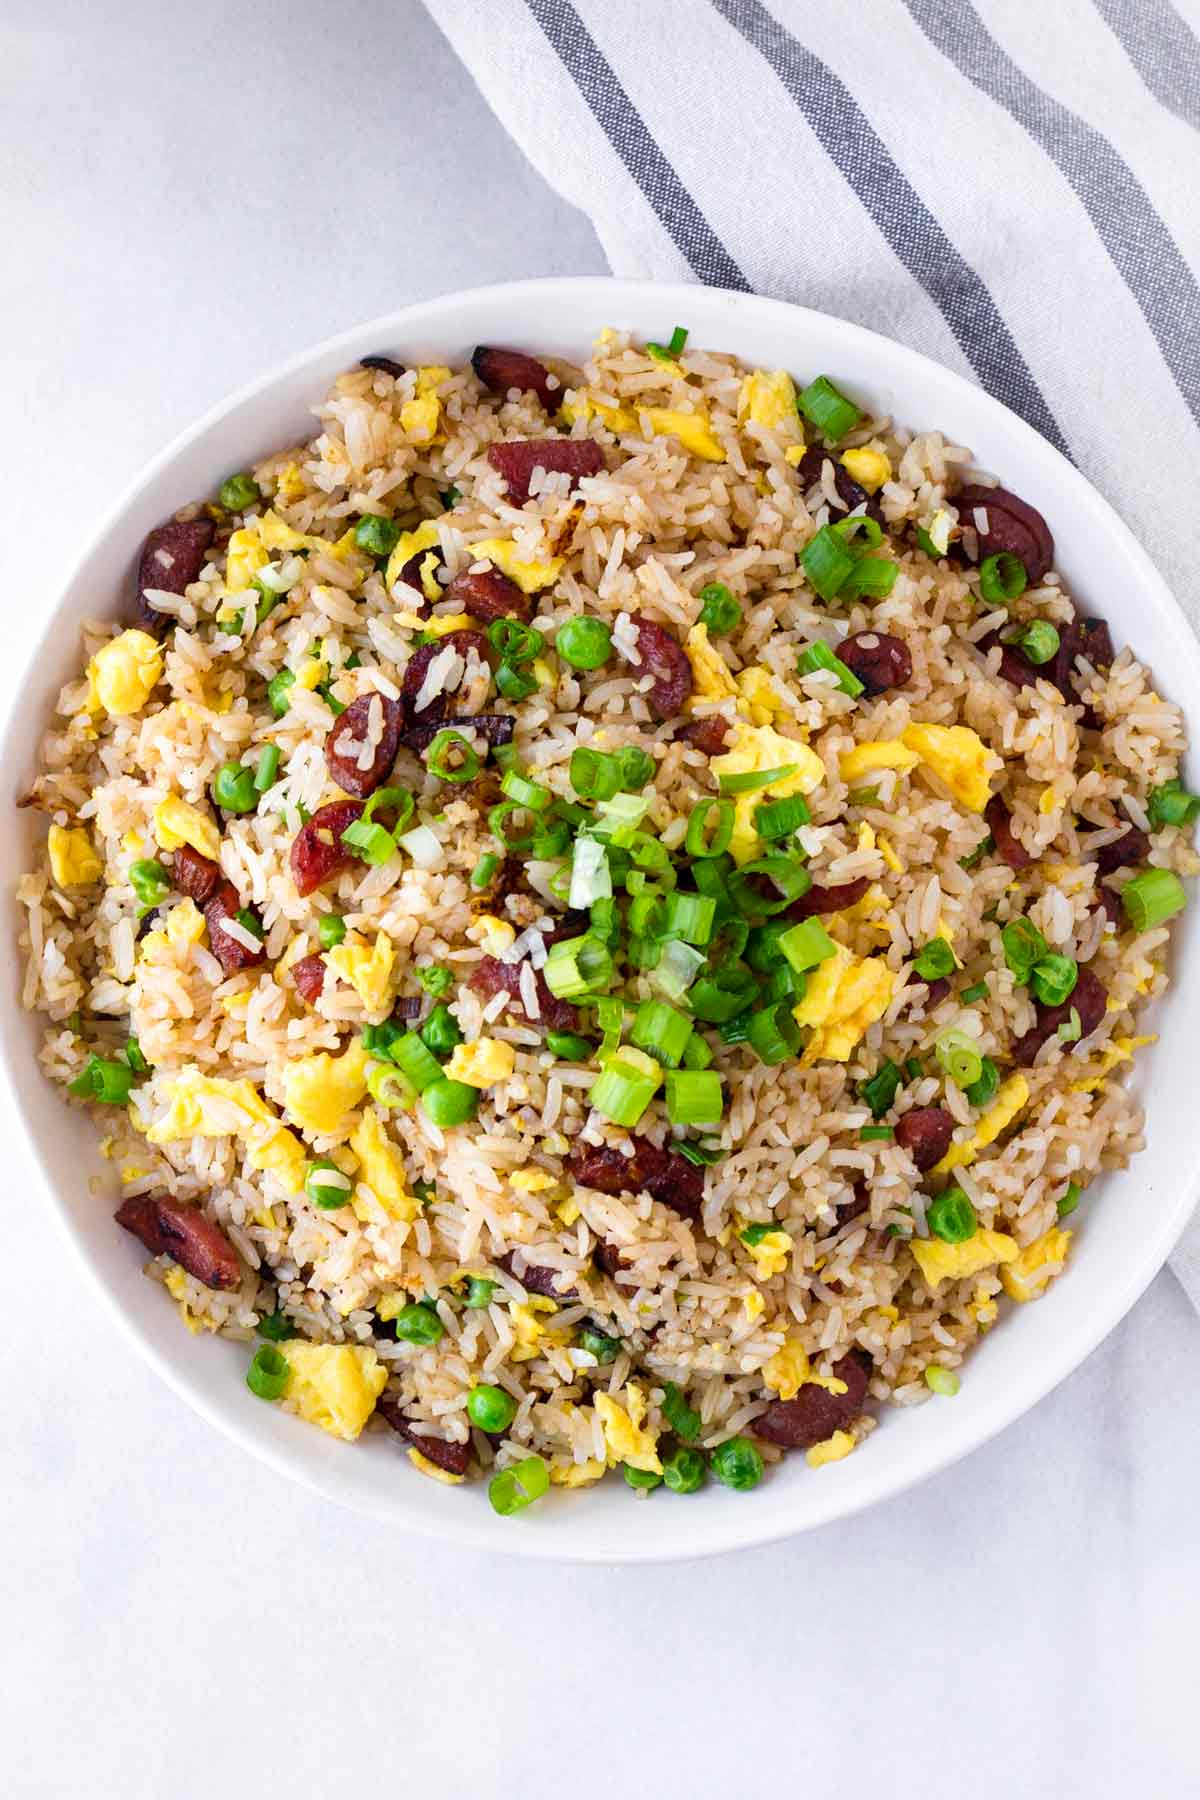 lap cheong fried rice in bowl